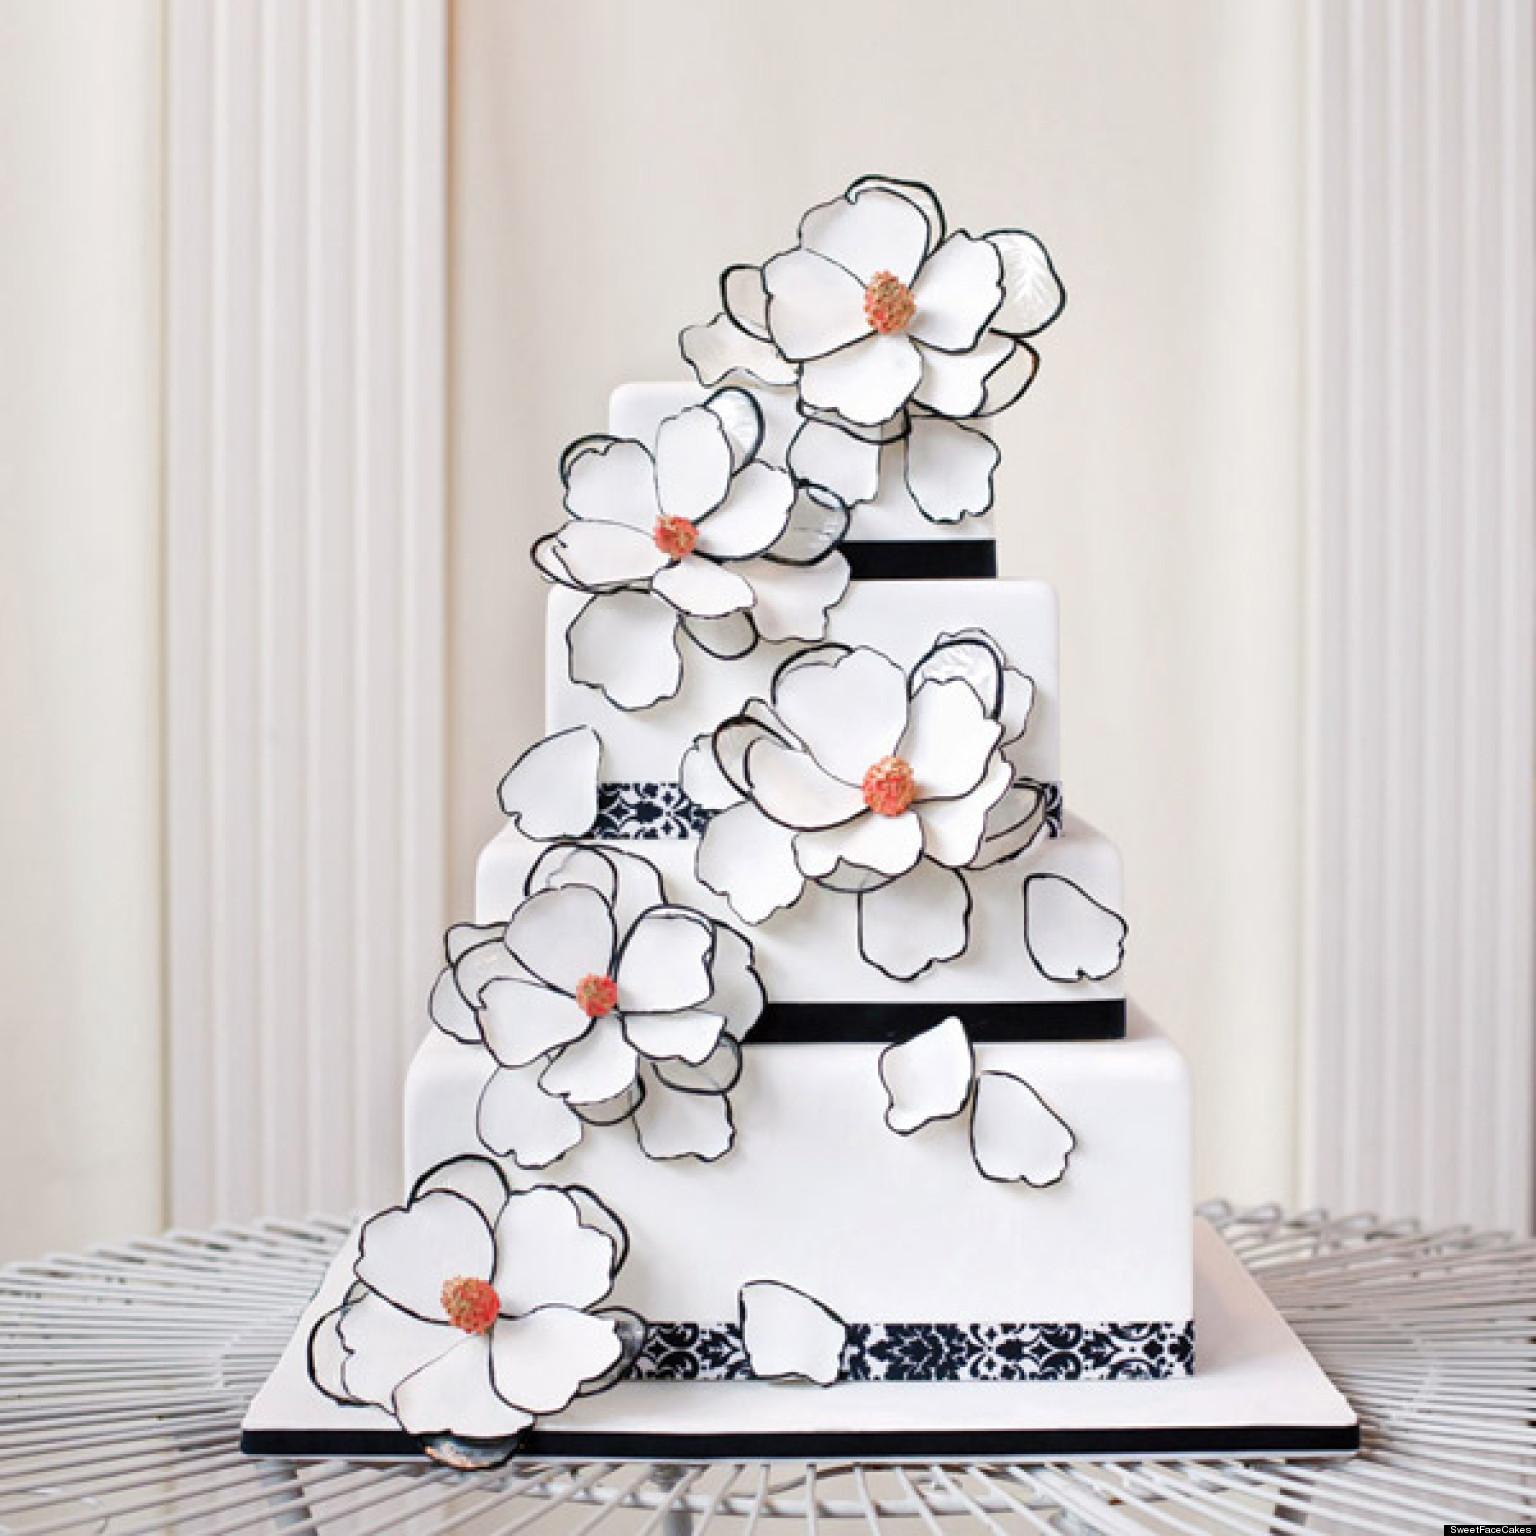 Average Cost Of A Wedding Cake For